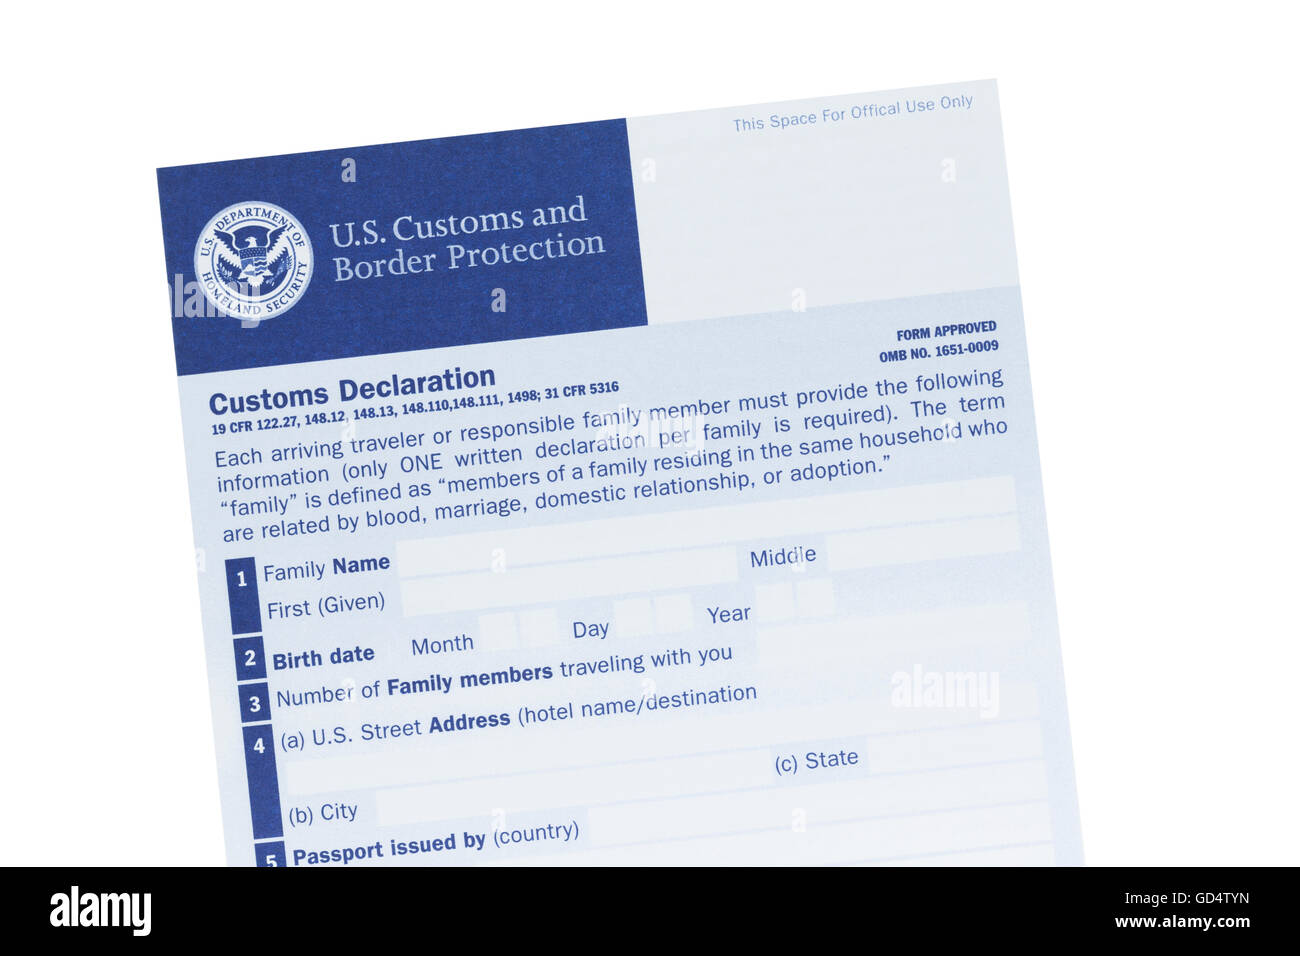 Customs declaration form stock photos customs declaration form us customs declaration form stock image thecheapjerseys Image collections